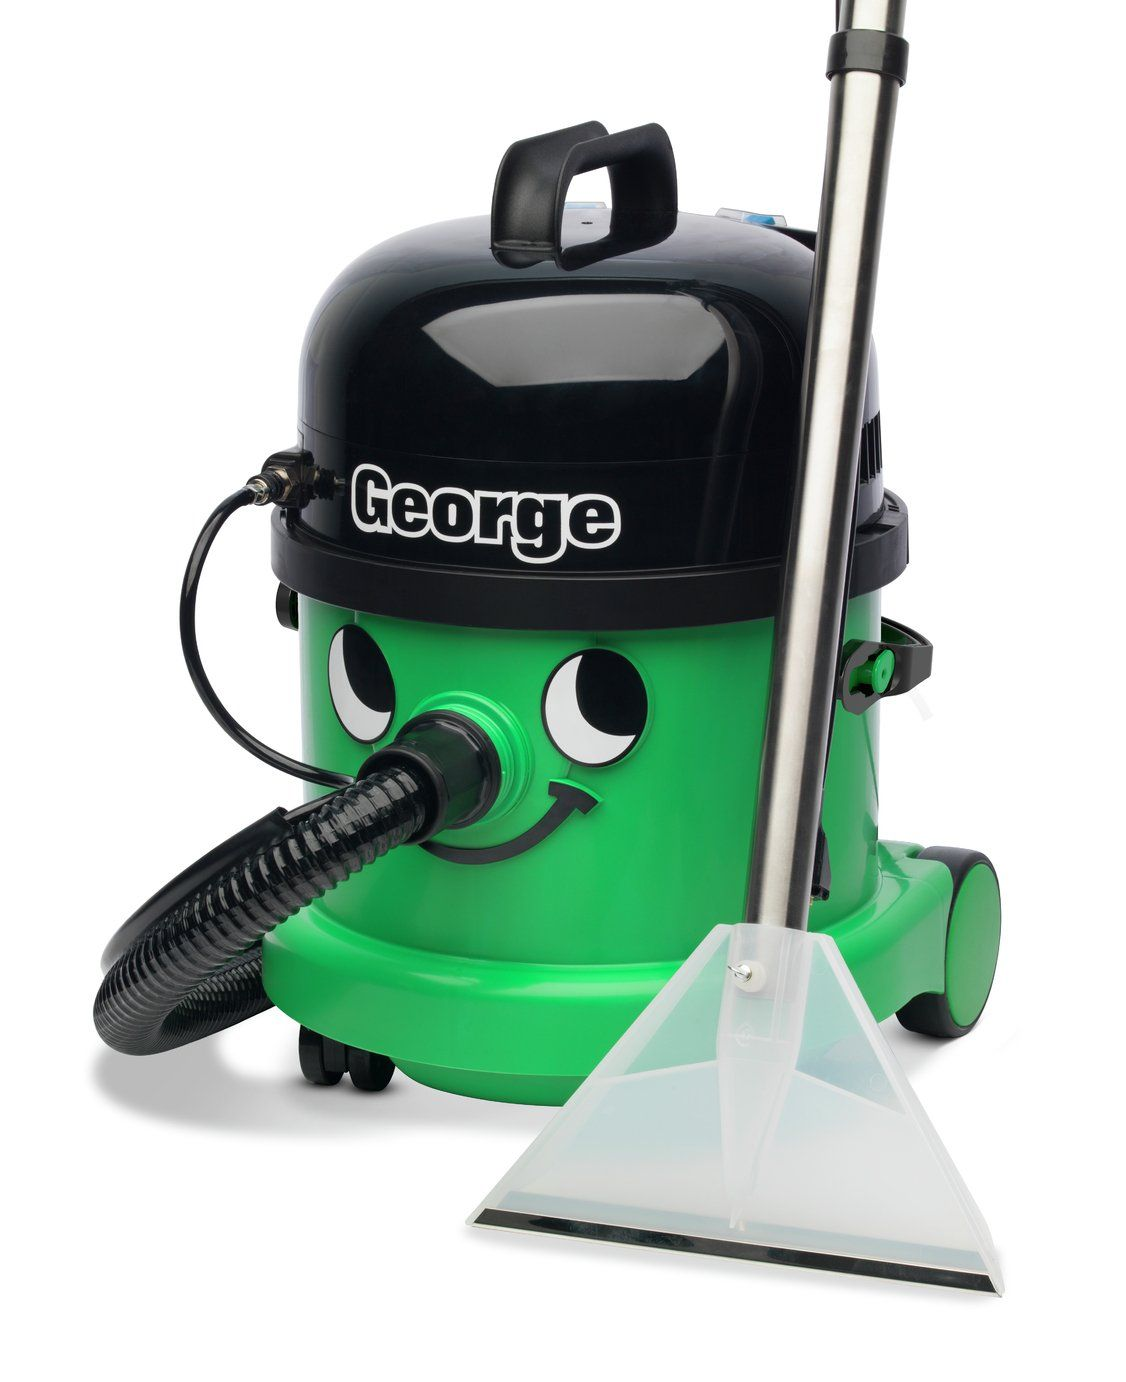 Buy George Gve 370 2 Wet And Dry Bagged Cylinder Vacuum Cleaner Vacuum Cleaners In 2020 Wet Dry Vacuum Cleaner Commercial Carpet Cleaning Wet Dry